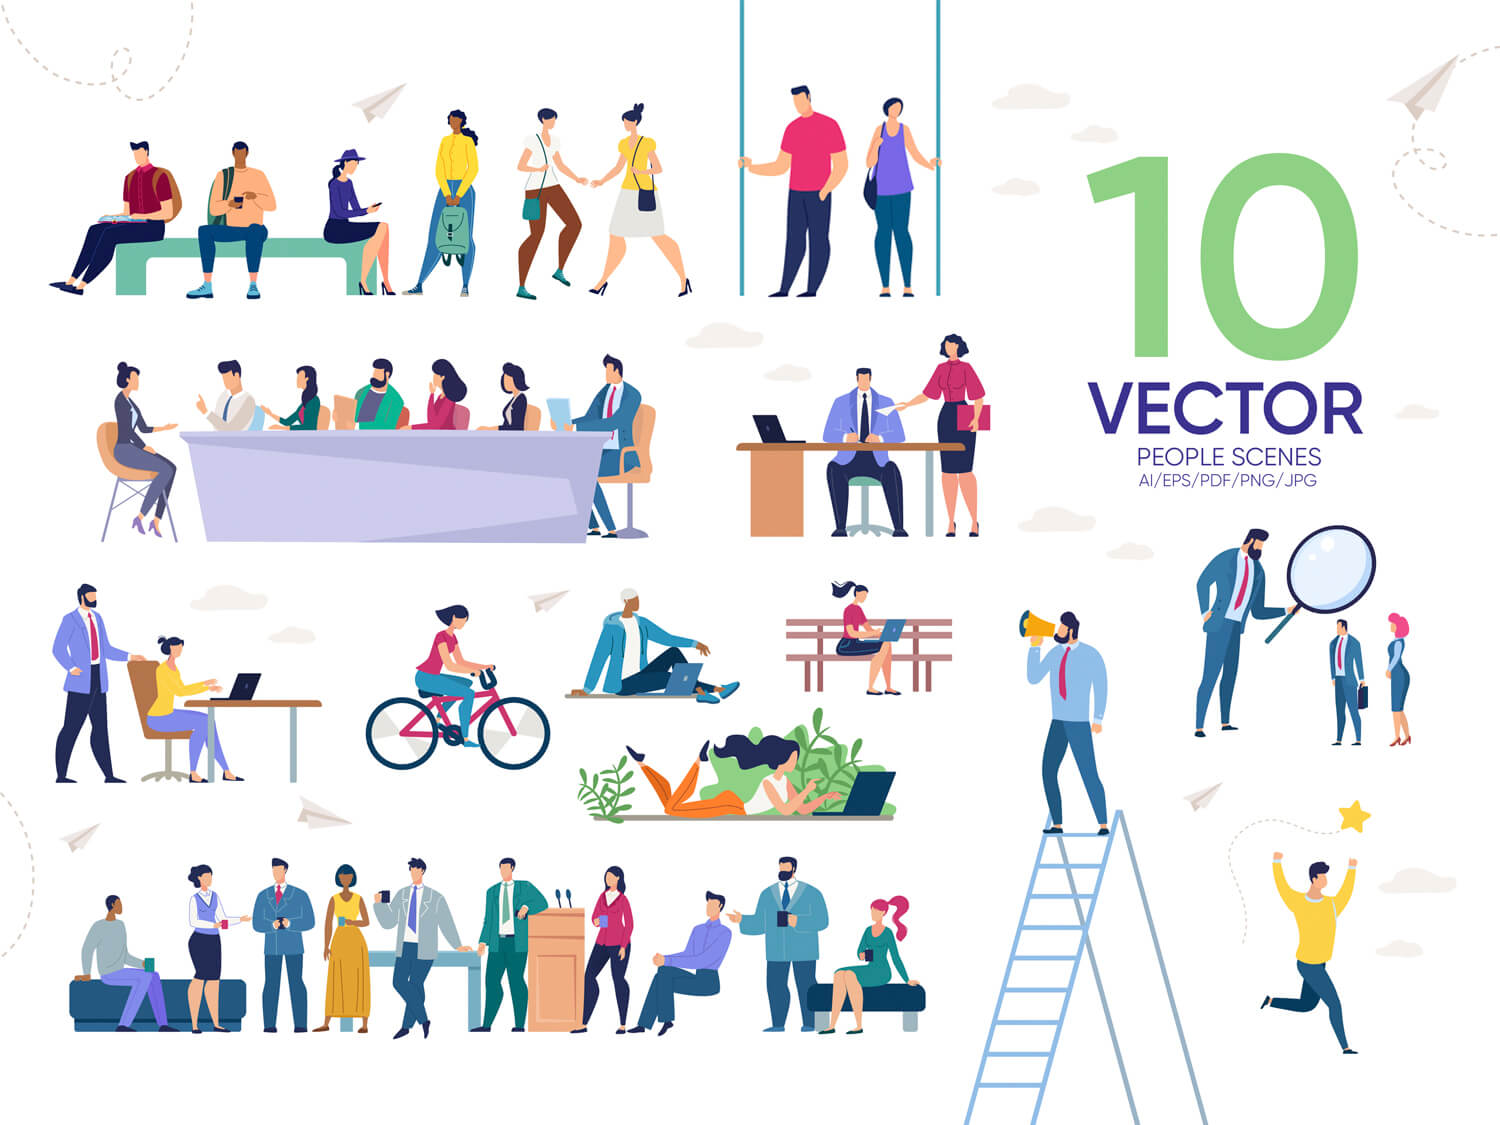 24-in-1 Flaticons Bundle: 10 People Vector Scenes